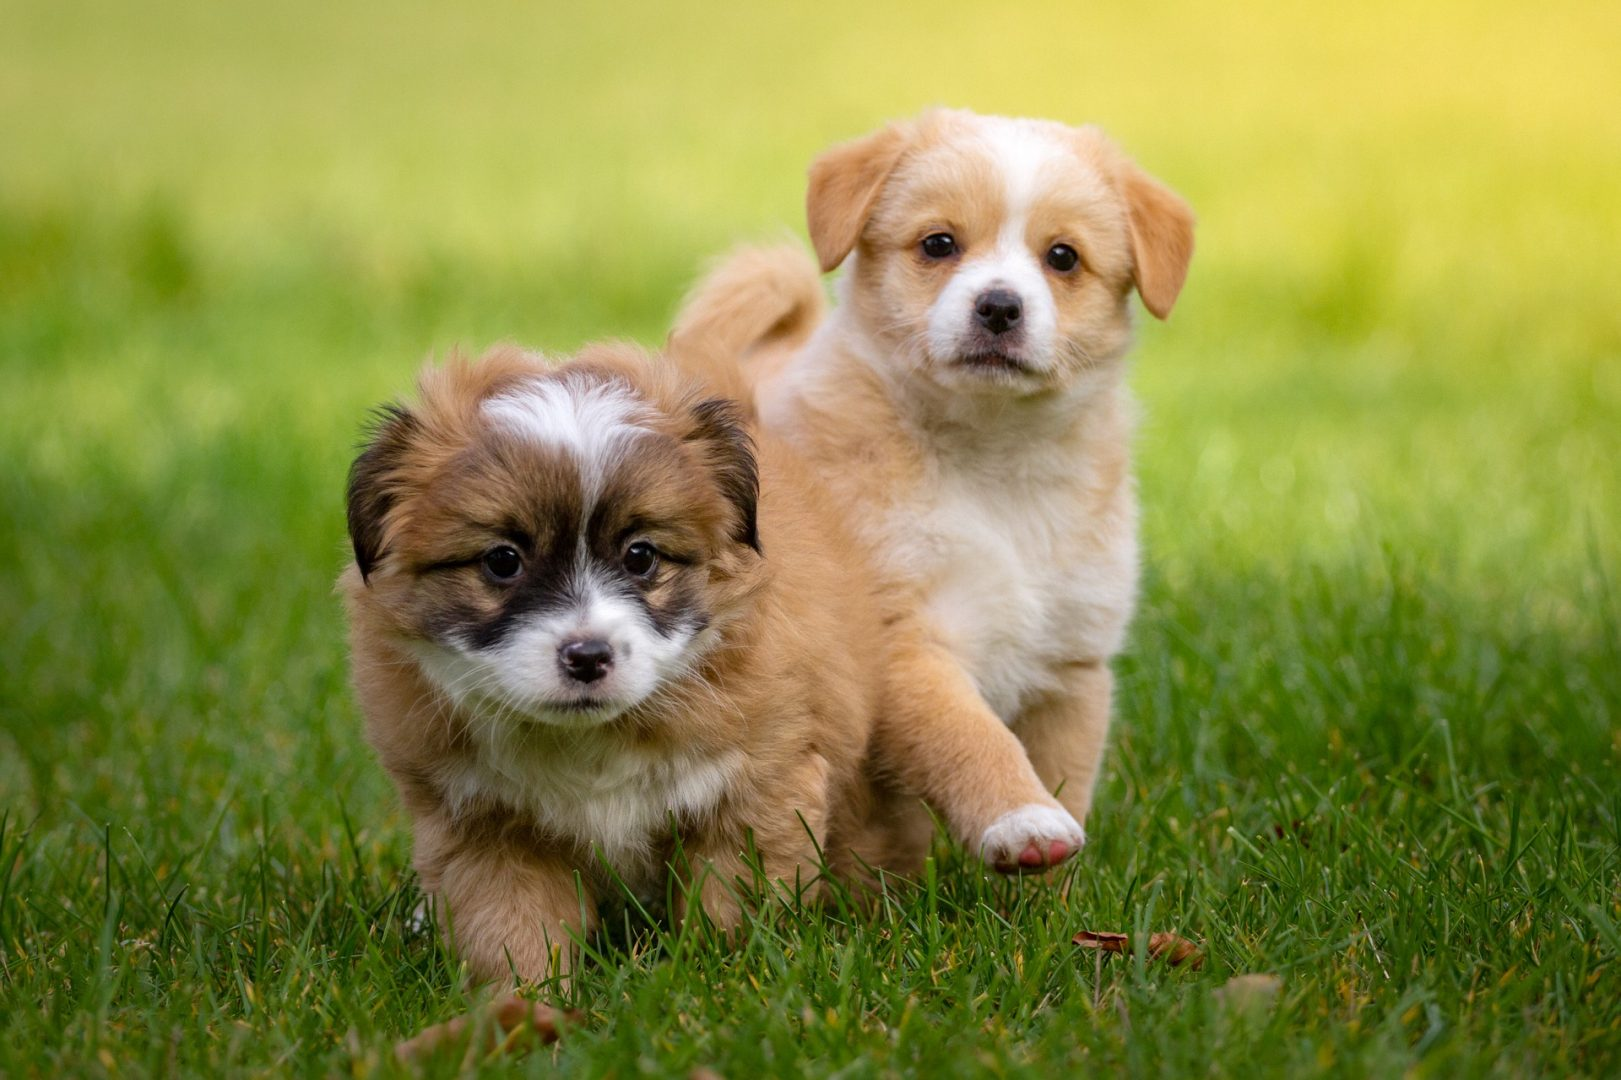 Puppies on grass